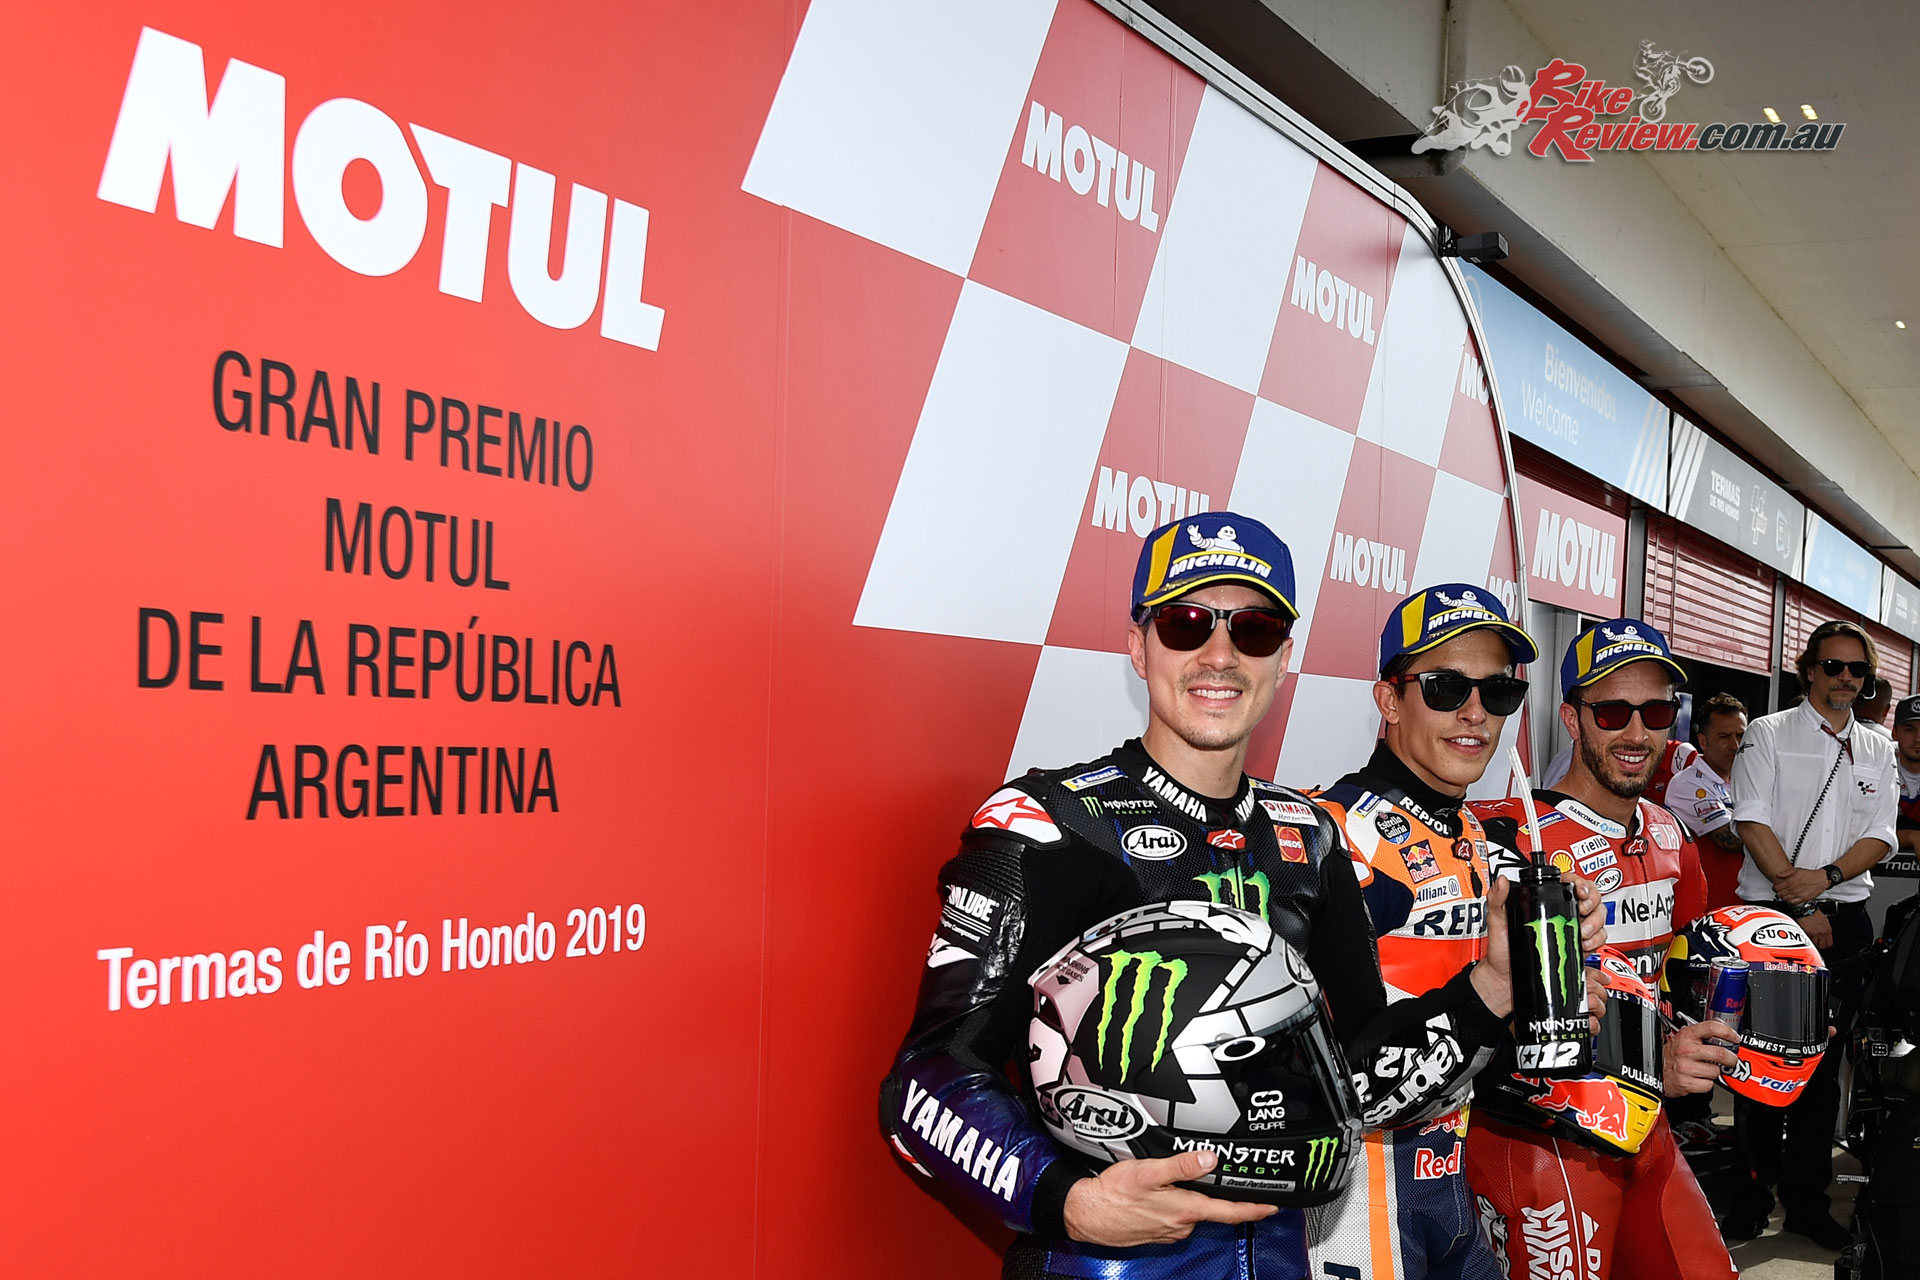 MotoGP Top 3 Qualifiers in Argentina 2019 -